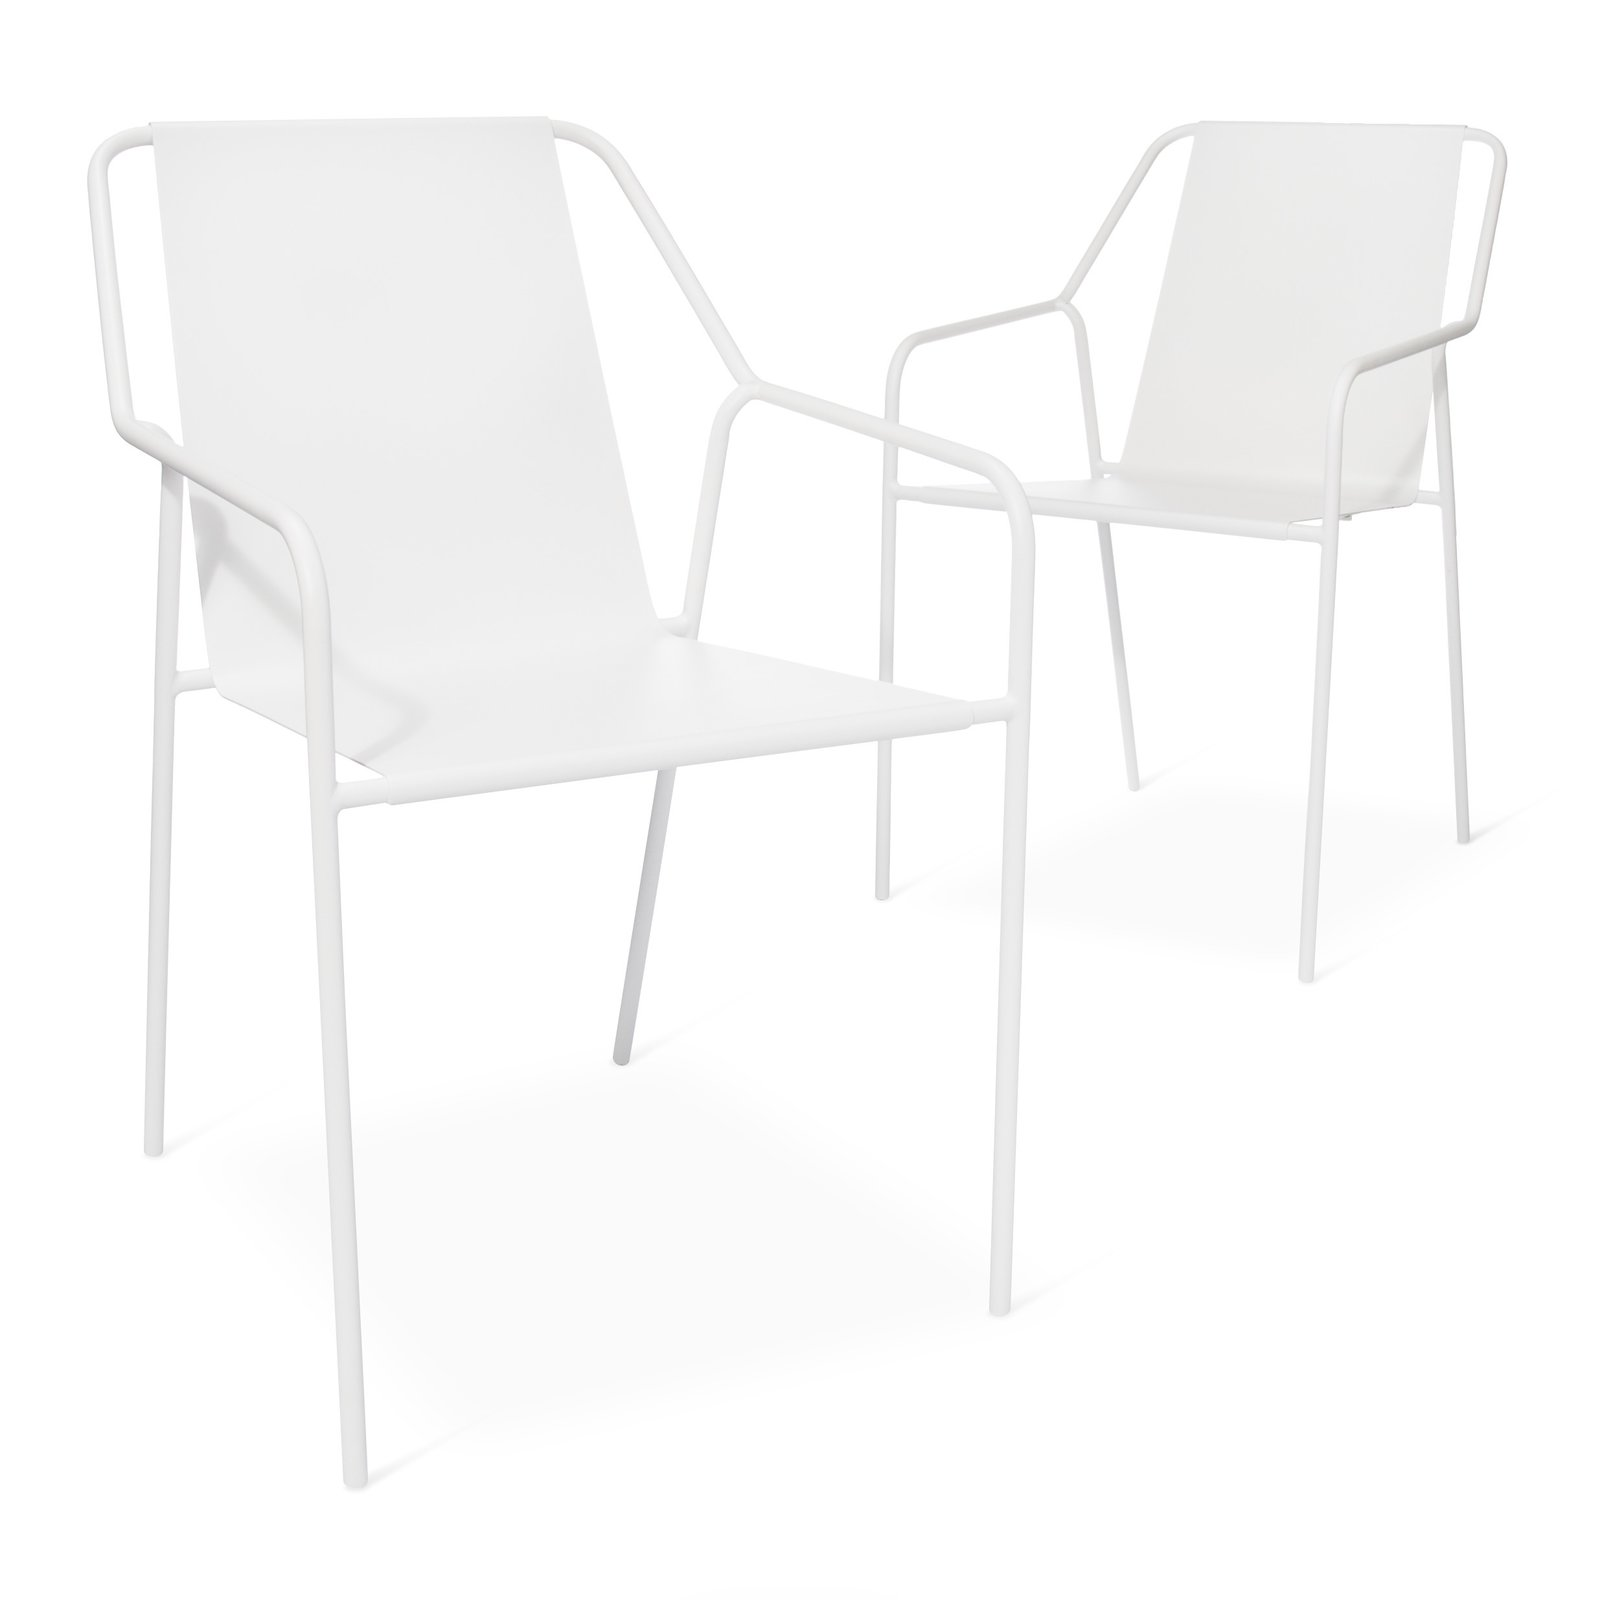 Outdoor Dining Chair - Set of 2, $149.99; available in gray or white; designed by Chris Deam and Nick Dine for Modern by Dwell Magazine for Target   Photo 16 of 17 in Modern by Dwell Magazine: Outdoor Collection